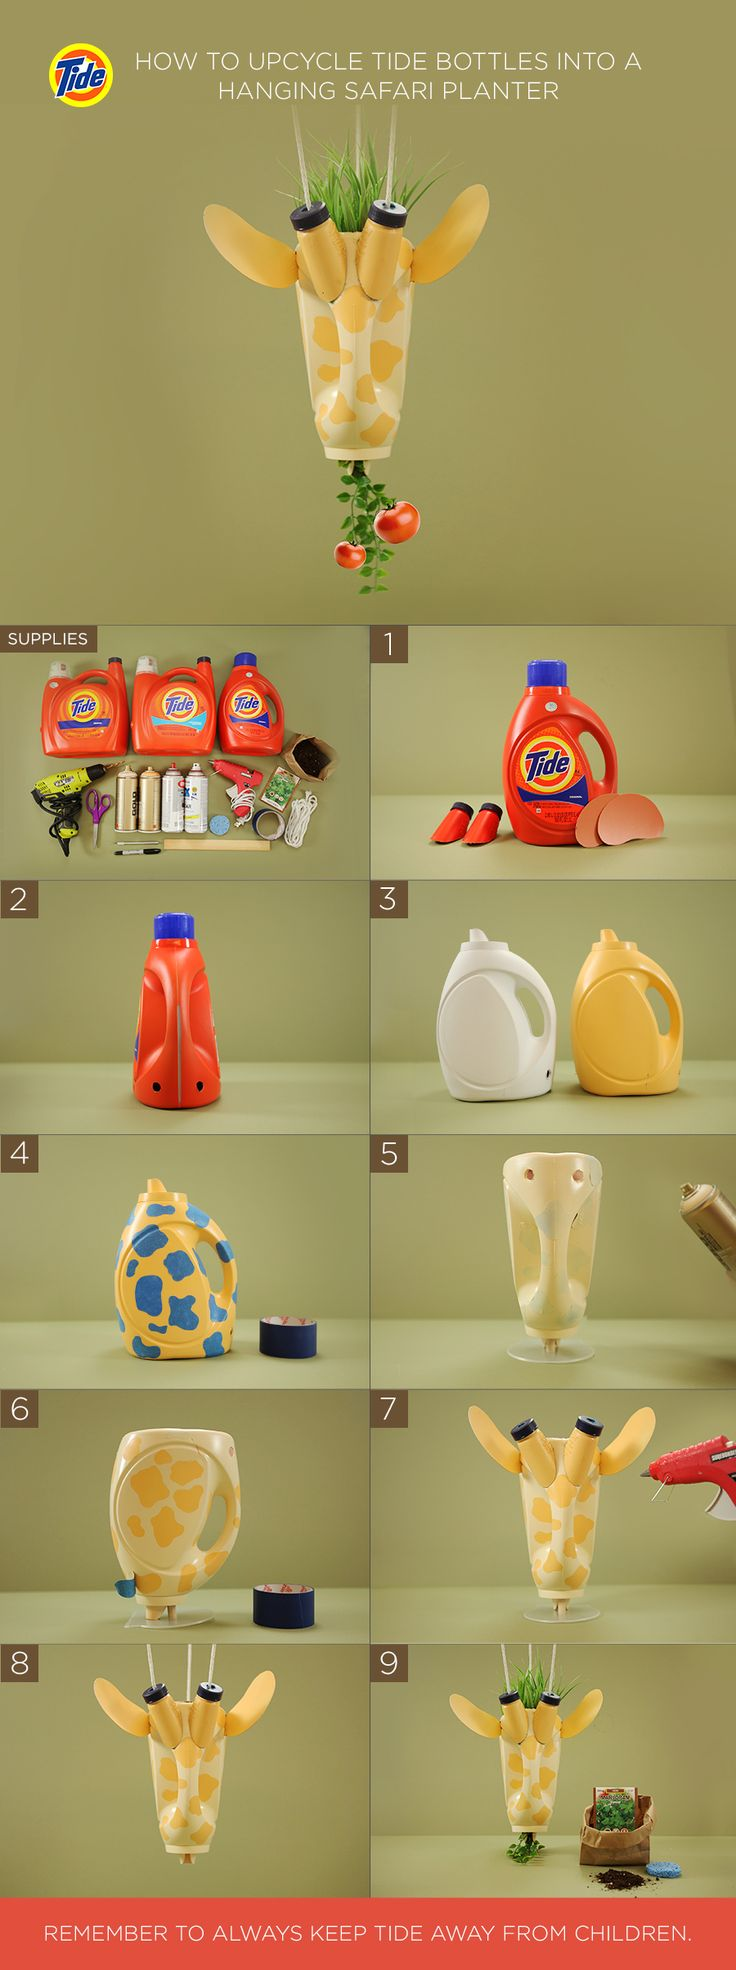 """How to Upcycle Tide Bottles Into a DIY Hanging Safari Planter: (1)Rinse bottles. Cut spouts and ears from extra-large Tide bottles. (2)Drill 2 holes in front and 1 in back. Cut 1 diagonal slit on each side. Remove bottle bottom. (3)Prime. Then paint with spot color. Let dry. (4)Add painter's tape cutouts. (5)Paint with topcoat. Let dry. (6)Remove tape. (7)Hot glue on ears and horns. (8)String rope. (9)Cut sponge into a doughnut. Place inside over spout. Add ¼"""" soil, seeds, then, more soil."""